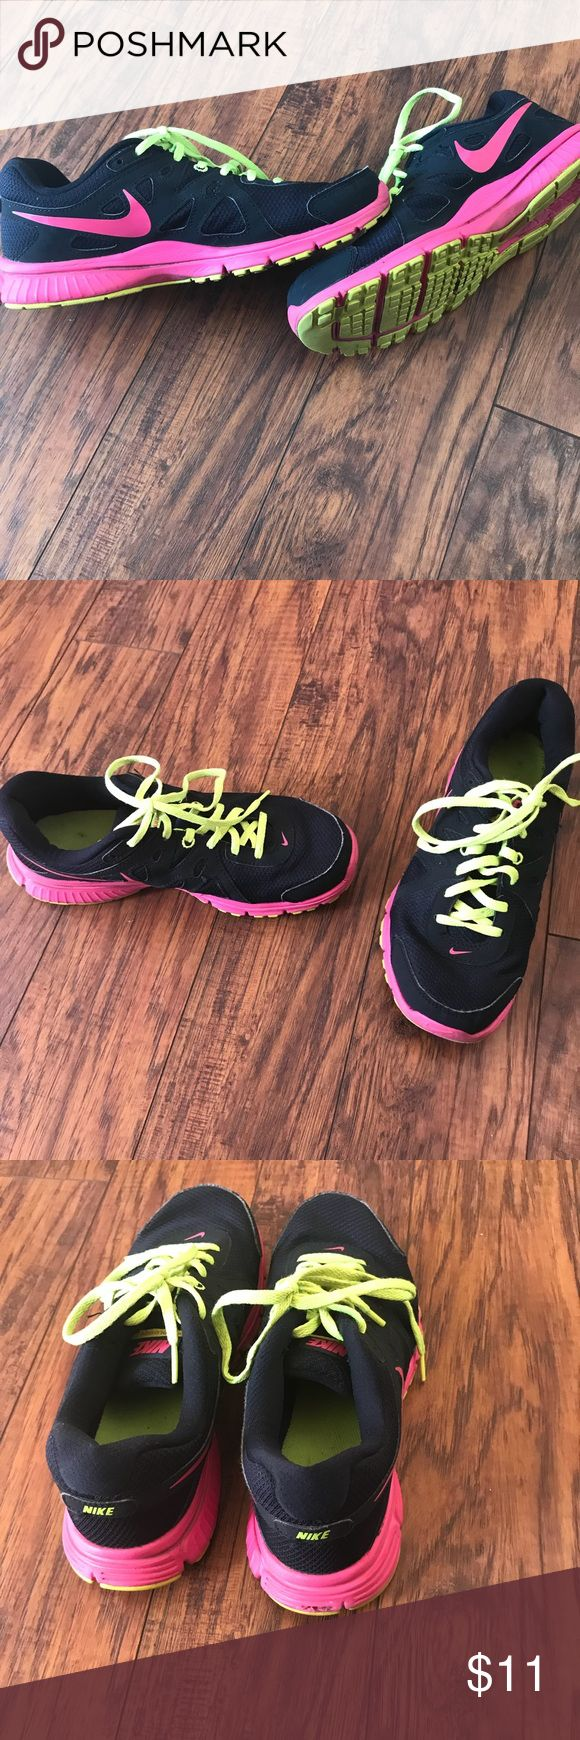 Women's Revolution 2 Nikes! Revolution 2 Nikes. Size 9 1/2. Without box. Nike Shoes Athletic Shoes